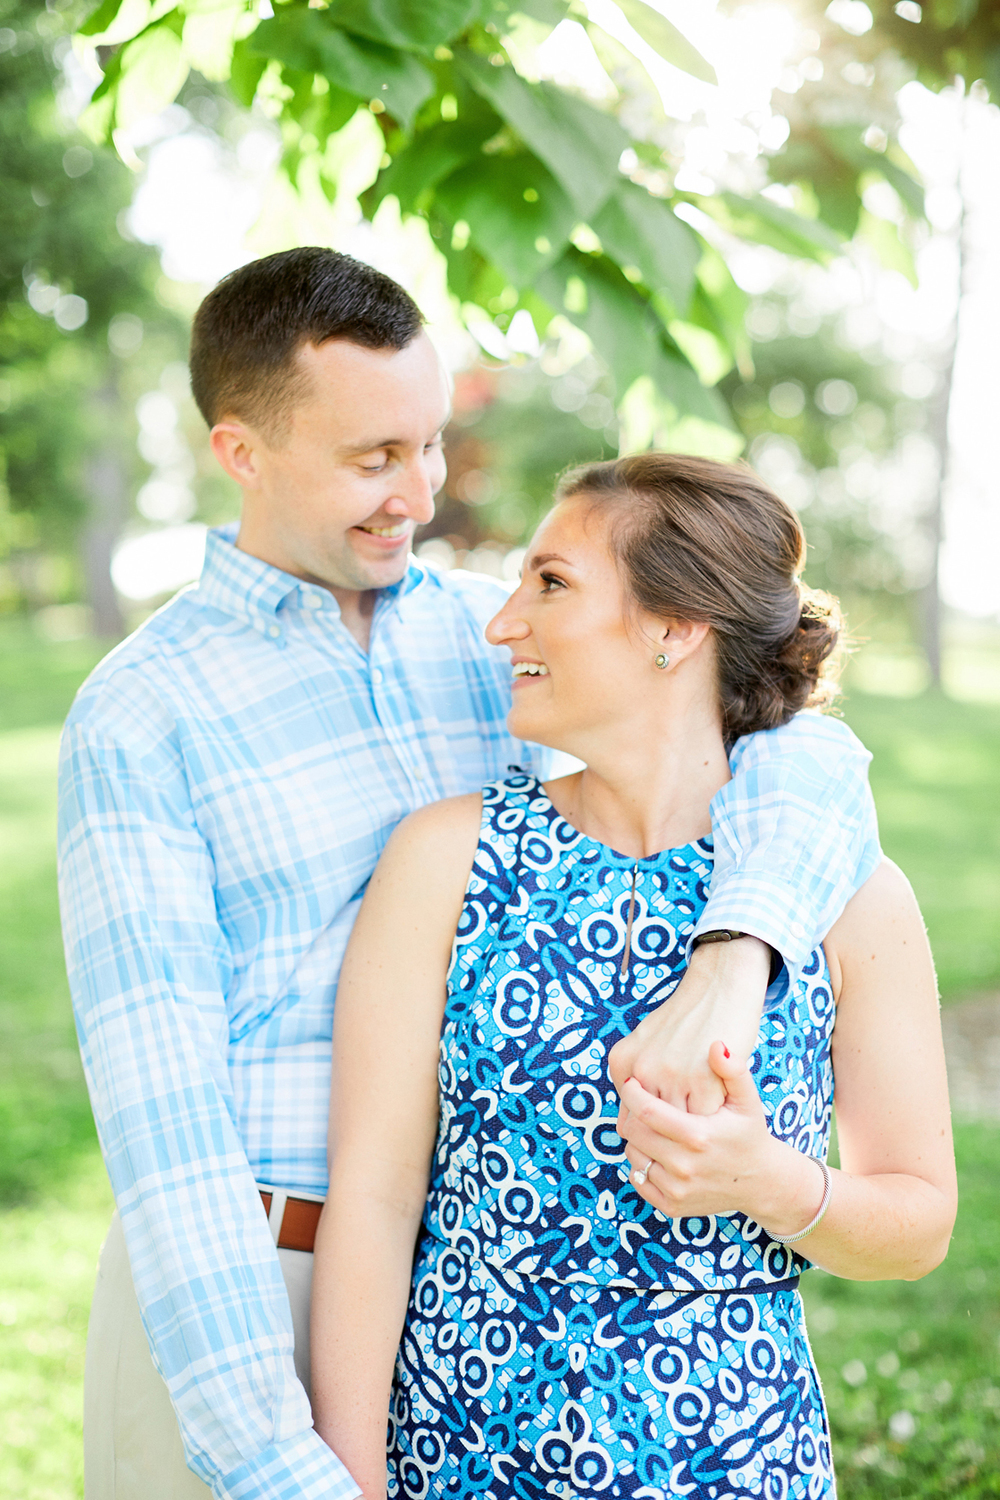 Forest Park St Louis Engagement Session in St Charles County by Oldani Photography St. Louis Wedding Photographers 8.jpg